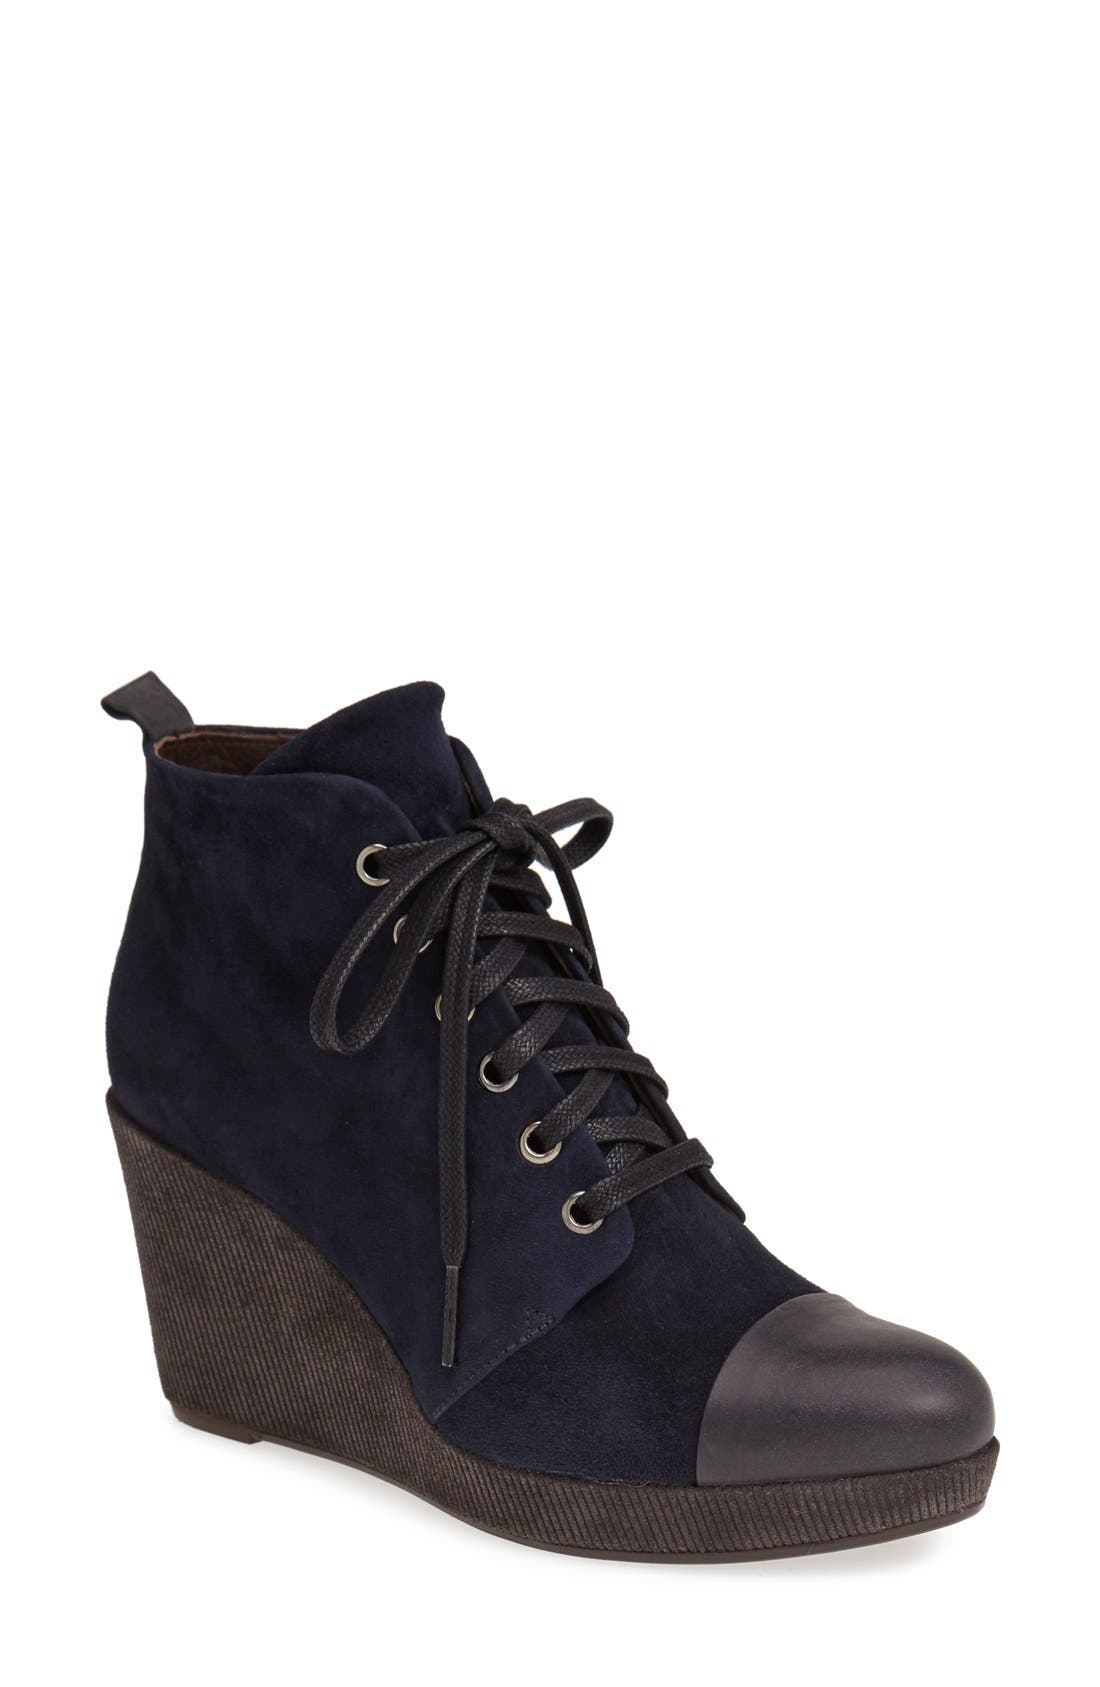 Alternate Image 1 Selected - Coclico 'Henri' Wedge Sneaker (Women)